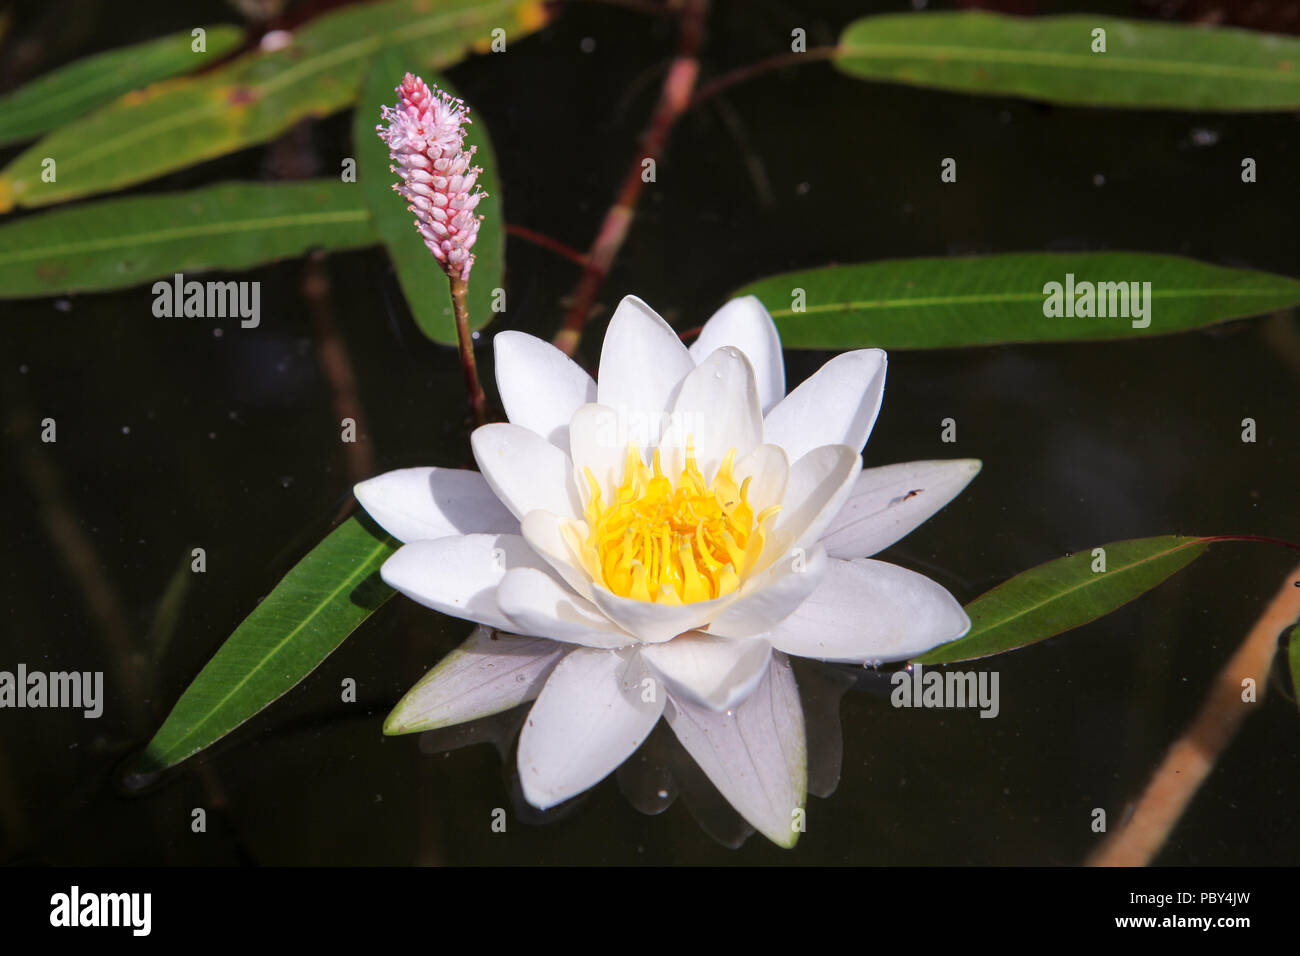 Beautiful lotus flower white nymphaea alba or water lily among beautiful lotus flower white nymphaea alba or water lily among green leaves with yellow pollen and little pink flowers on the background close up izmirmasajfo